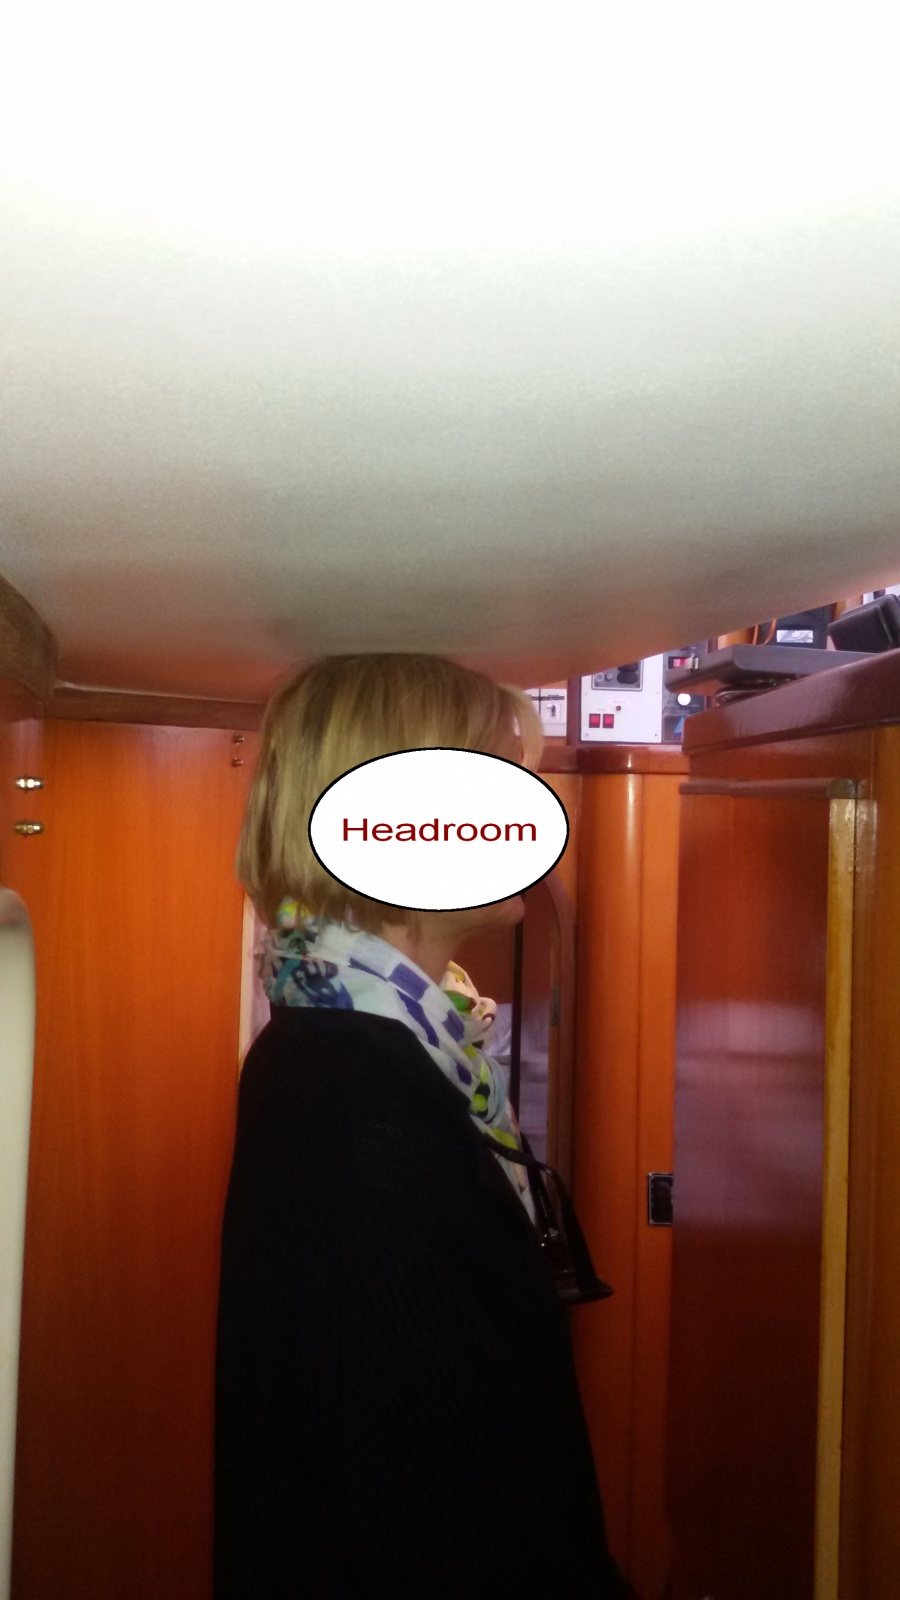 Click image for larger version  Name:Headroom 2.jpg Views:85 Size:242.3 KB ID:125619